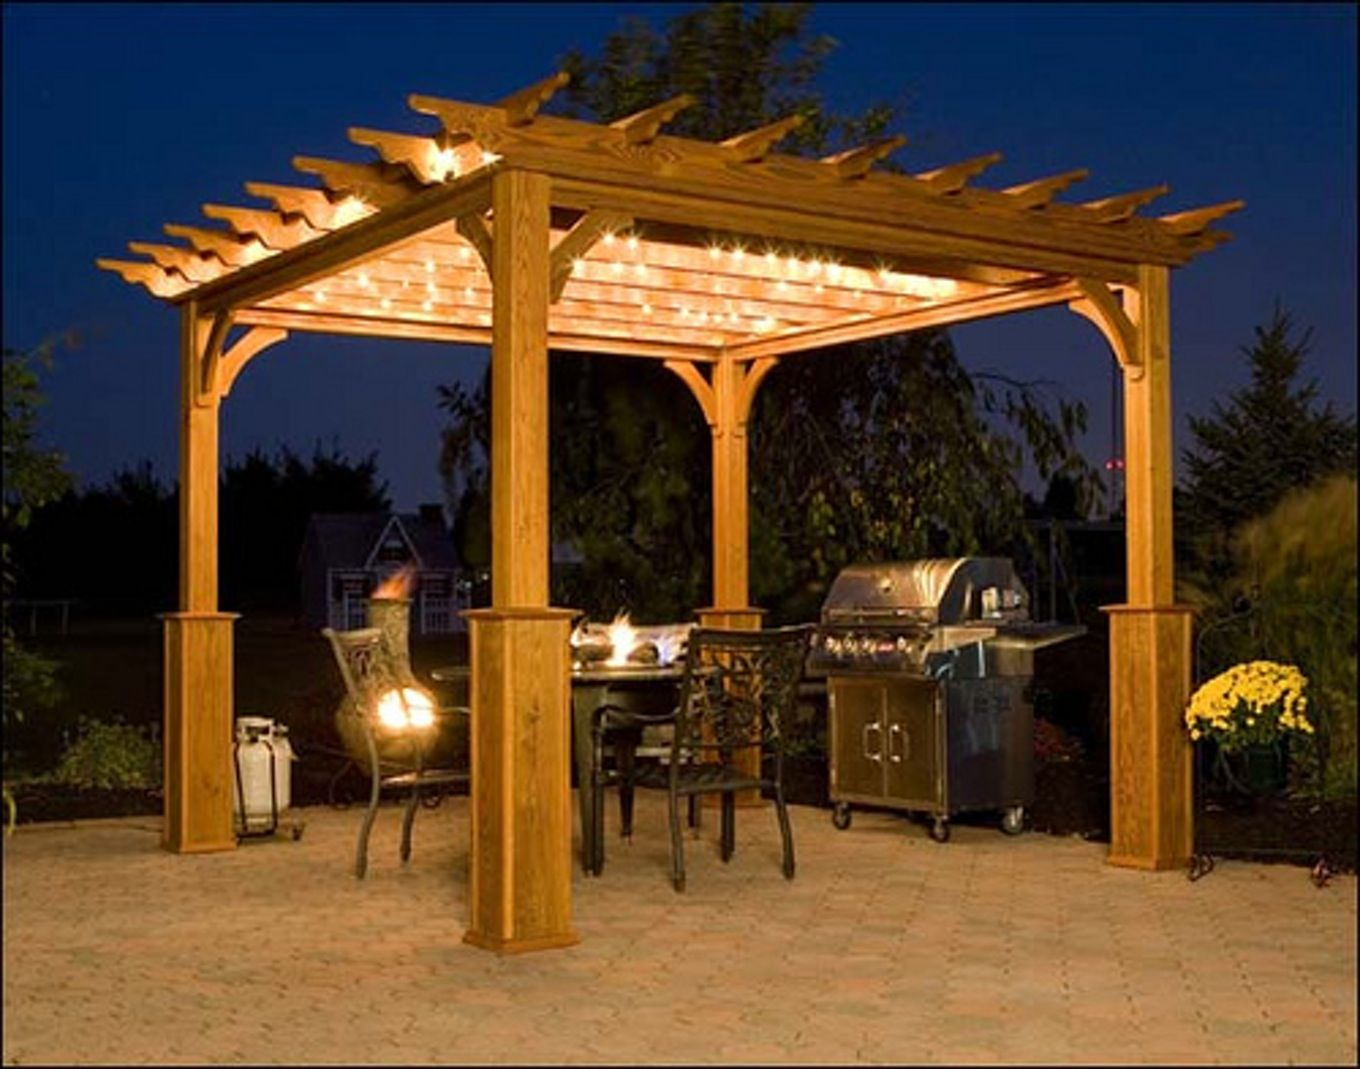 Genial Exterior: Taylor Retractable Shade Pergola Pergola Plans Home Depot Nyc  Mongolian Shade Retractable Taylor Images Attached To House Modern Canopy  Cu2026 ...